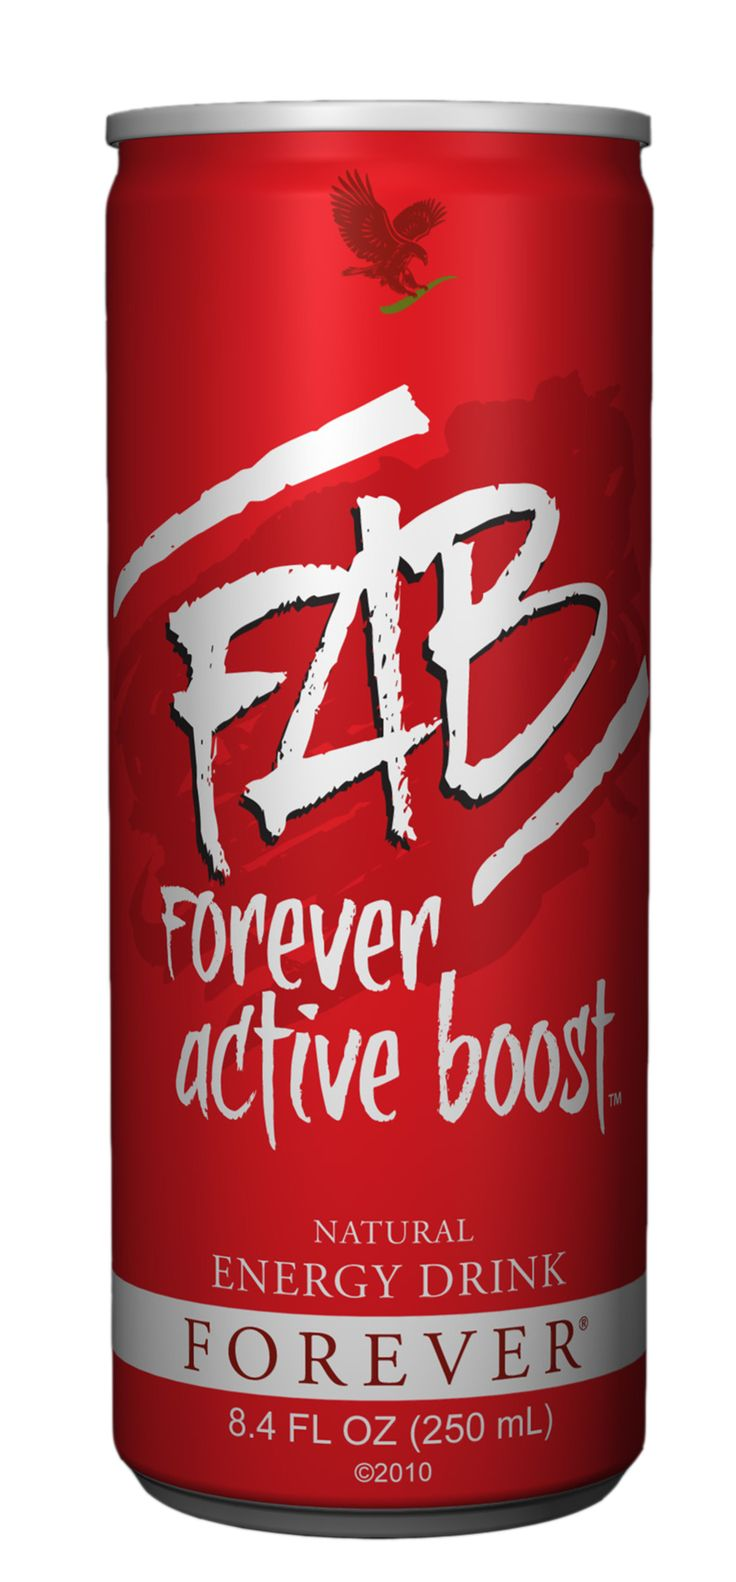 technological factors energy drinks 5-hour energy rockstar monster amp starbucks doubleshot americans are  consuming these and other high-energy drinks in record numbers reportedly.